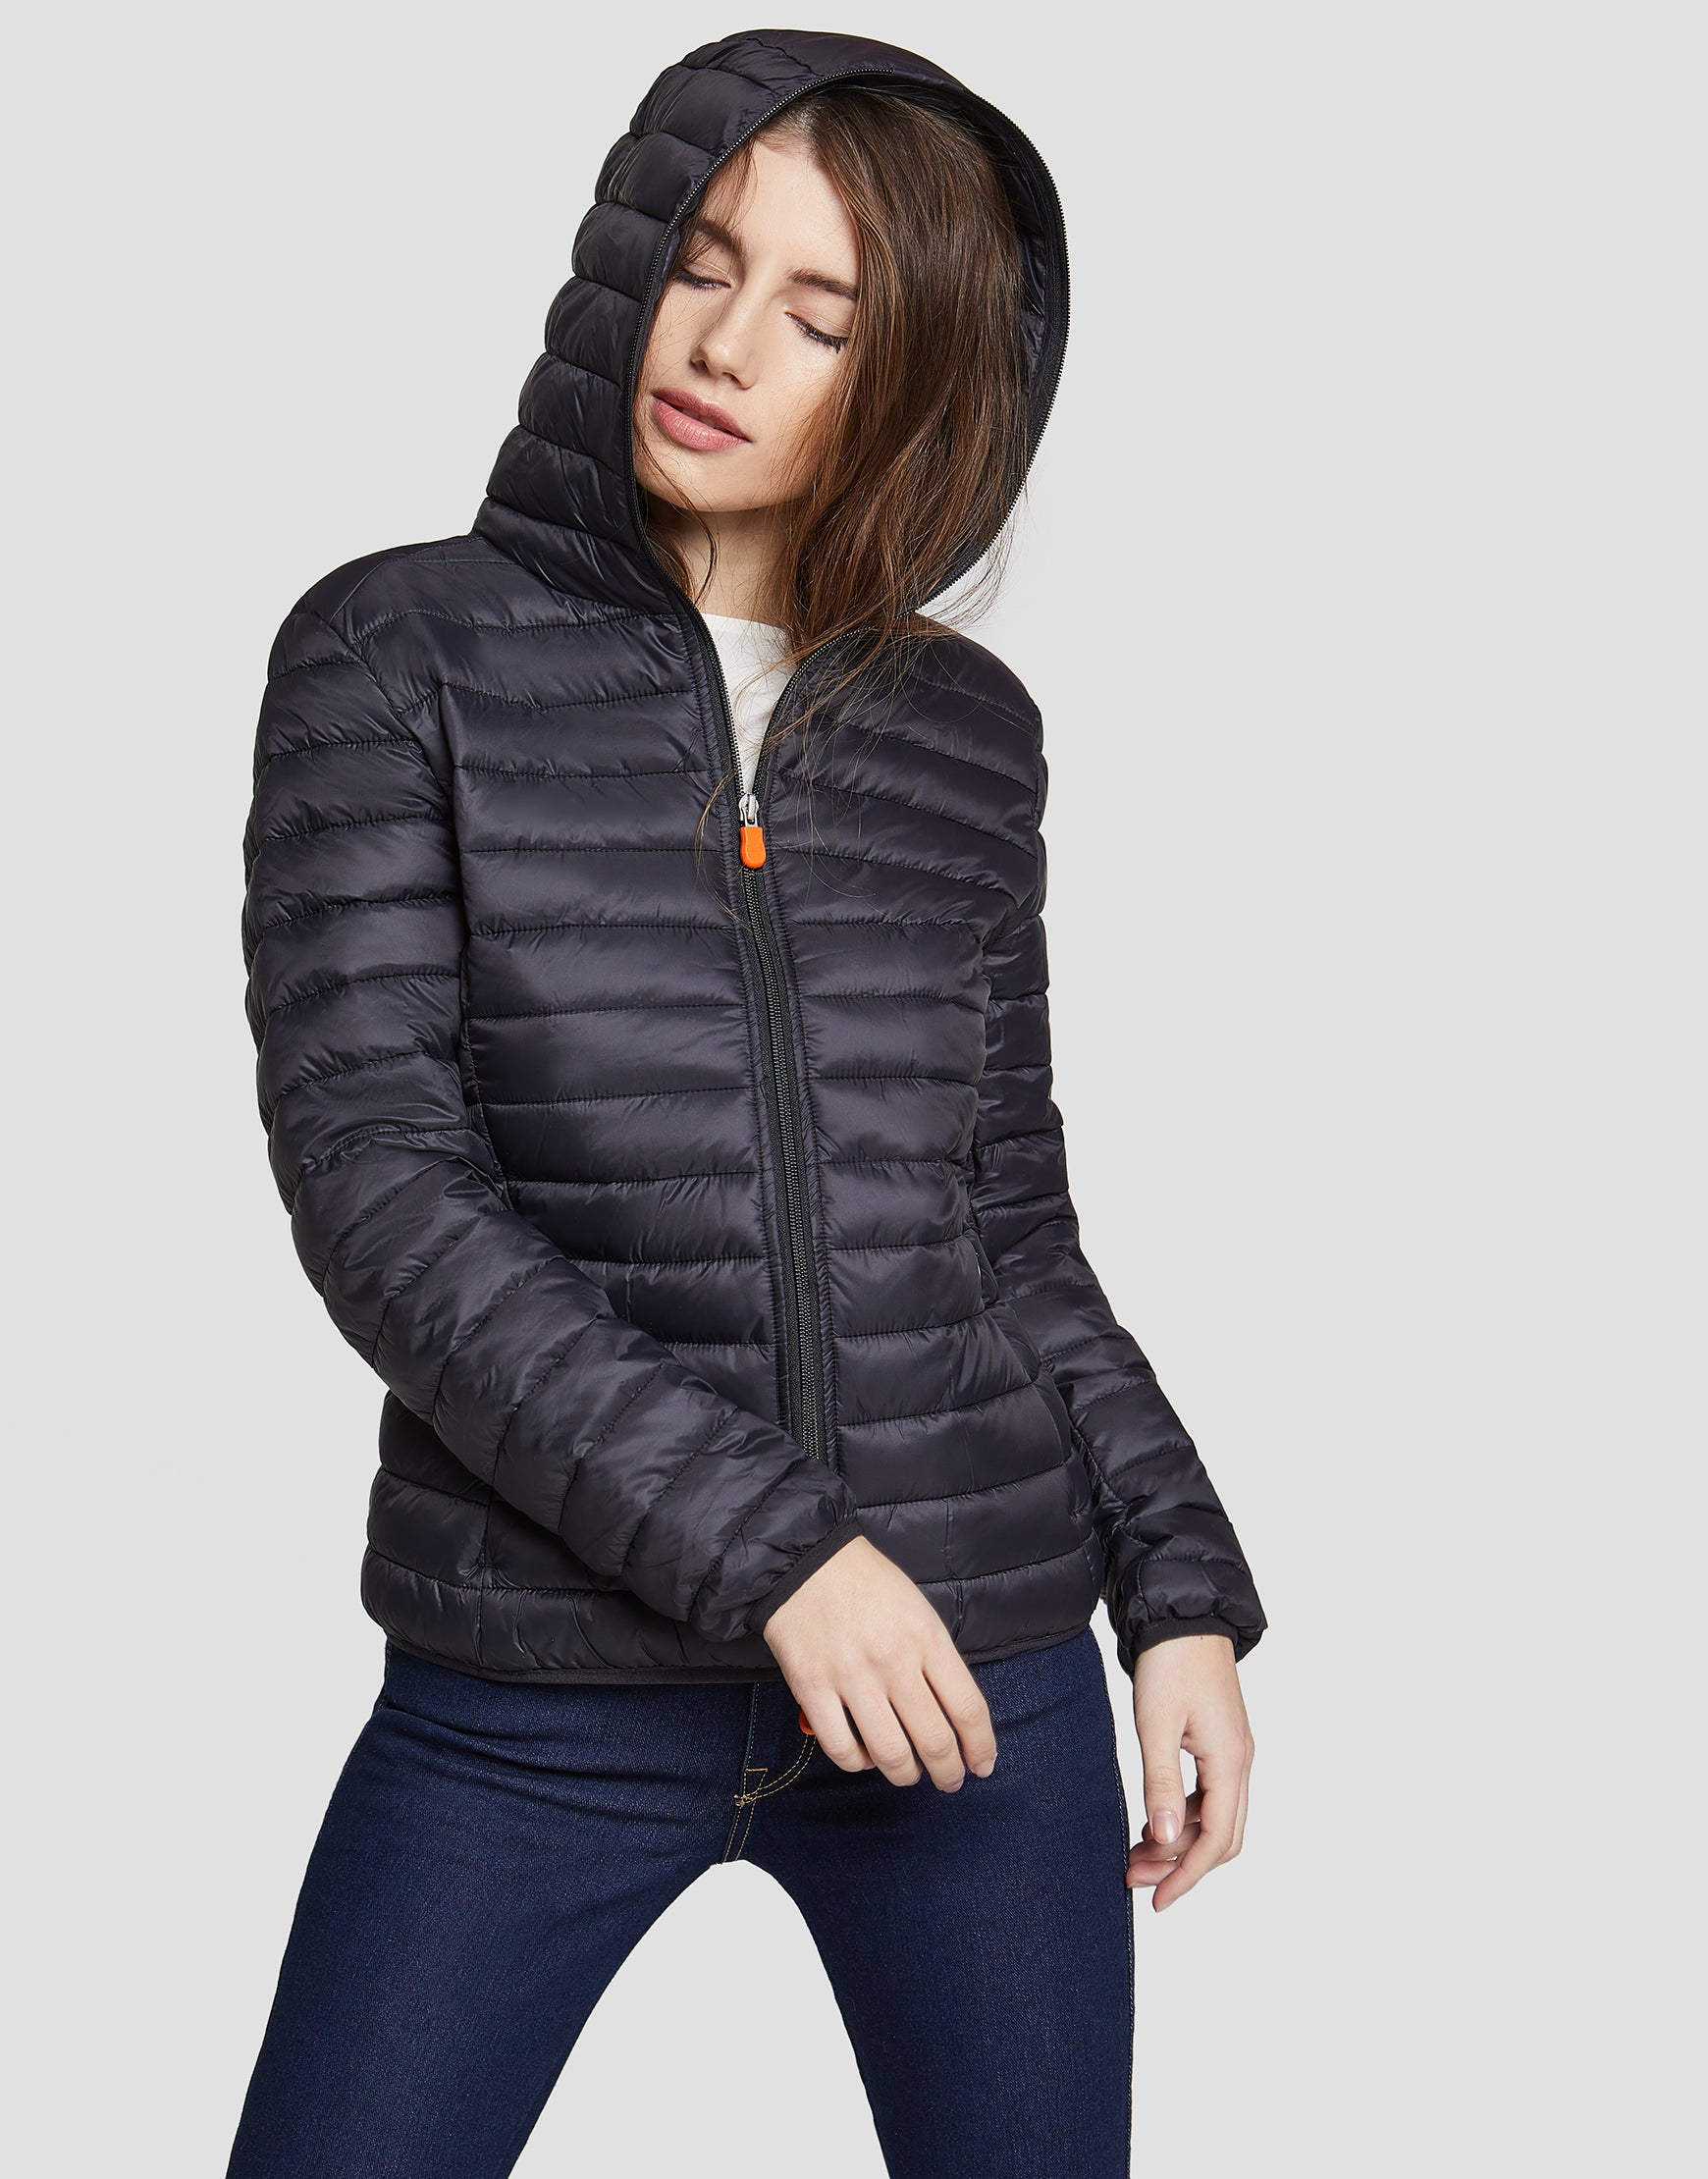 cc859652d31 Save The Duck Womens Jacket - Save the Duck